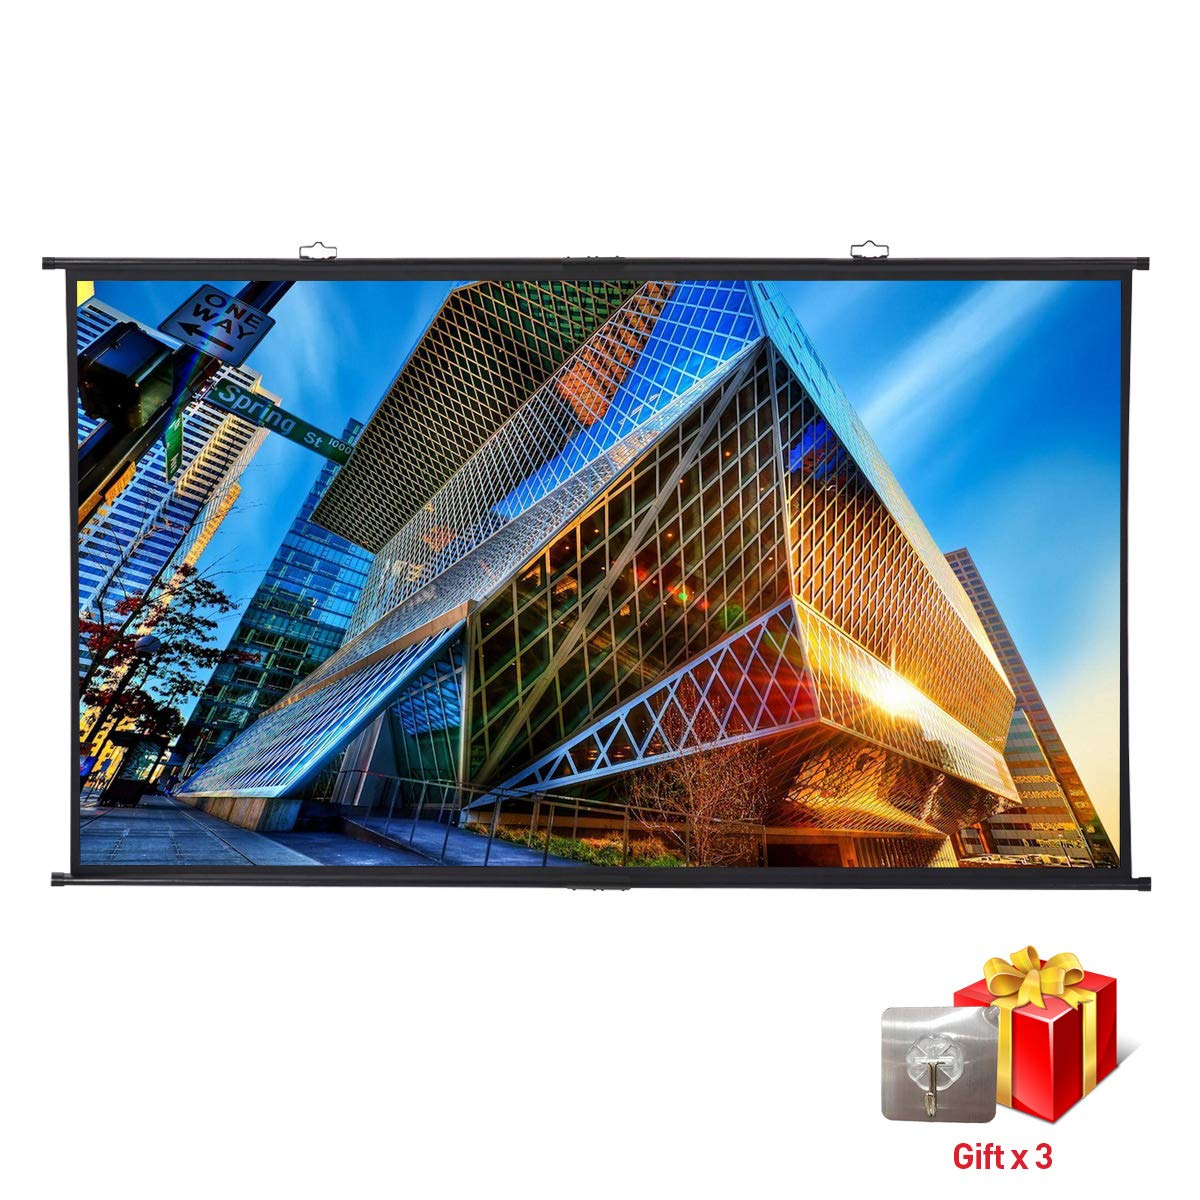 Projector Screen, Manual Pull Down, Excelvan Portable Diagonal 120'' 16:9 Wrinkle-Free 4K HD Home Cinema Video Screen, Easy Install on Wall Mount, Strong Sticky Hook Included